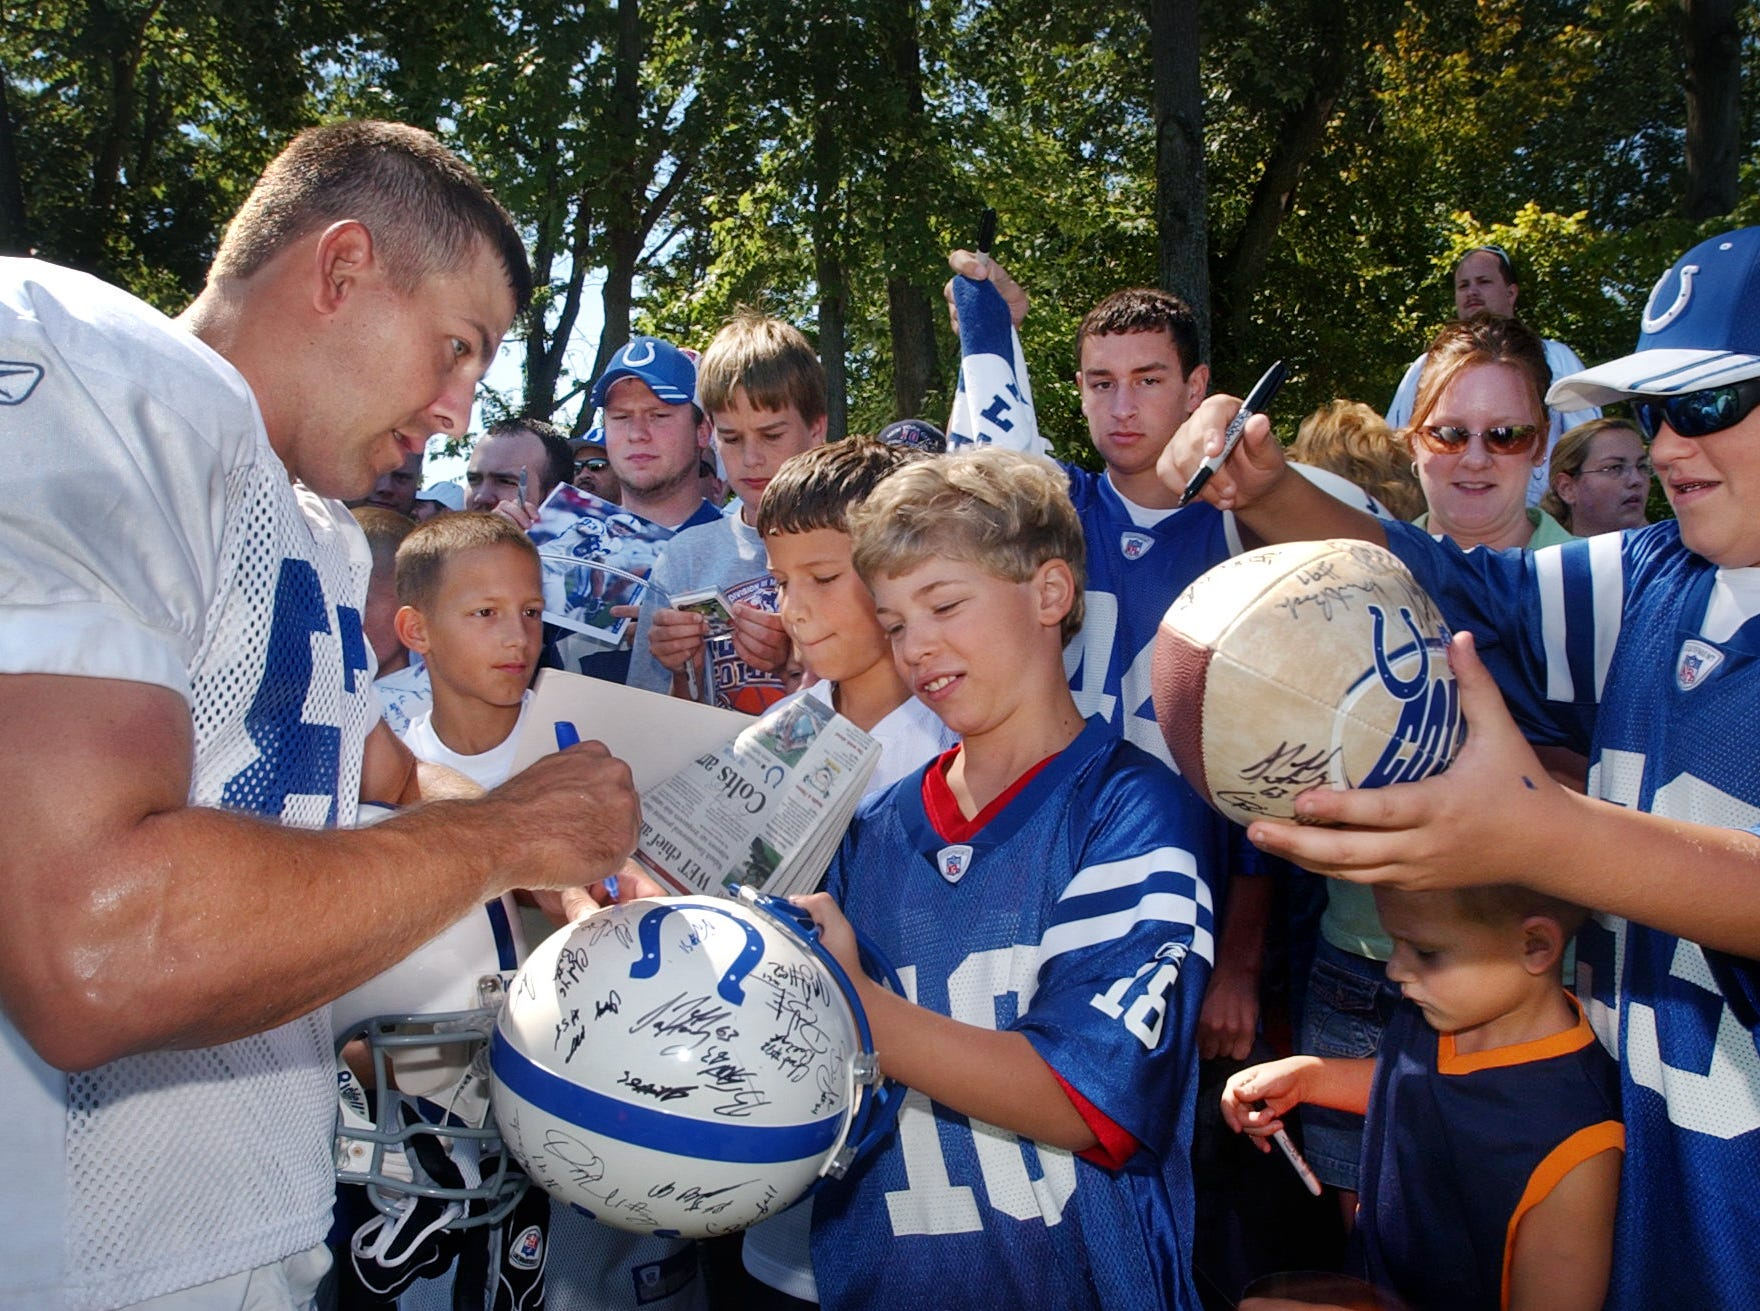 Indianapolis Colts wide receiver Brandon Stokley signs an autograph for Kent Kraus, 11, Greenwood, after the morning workout at the Colts' first training camp at Rose-Hulman Institute of Technology on Thursday, July 28, 2005.